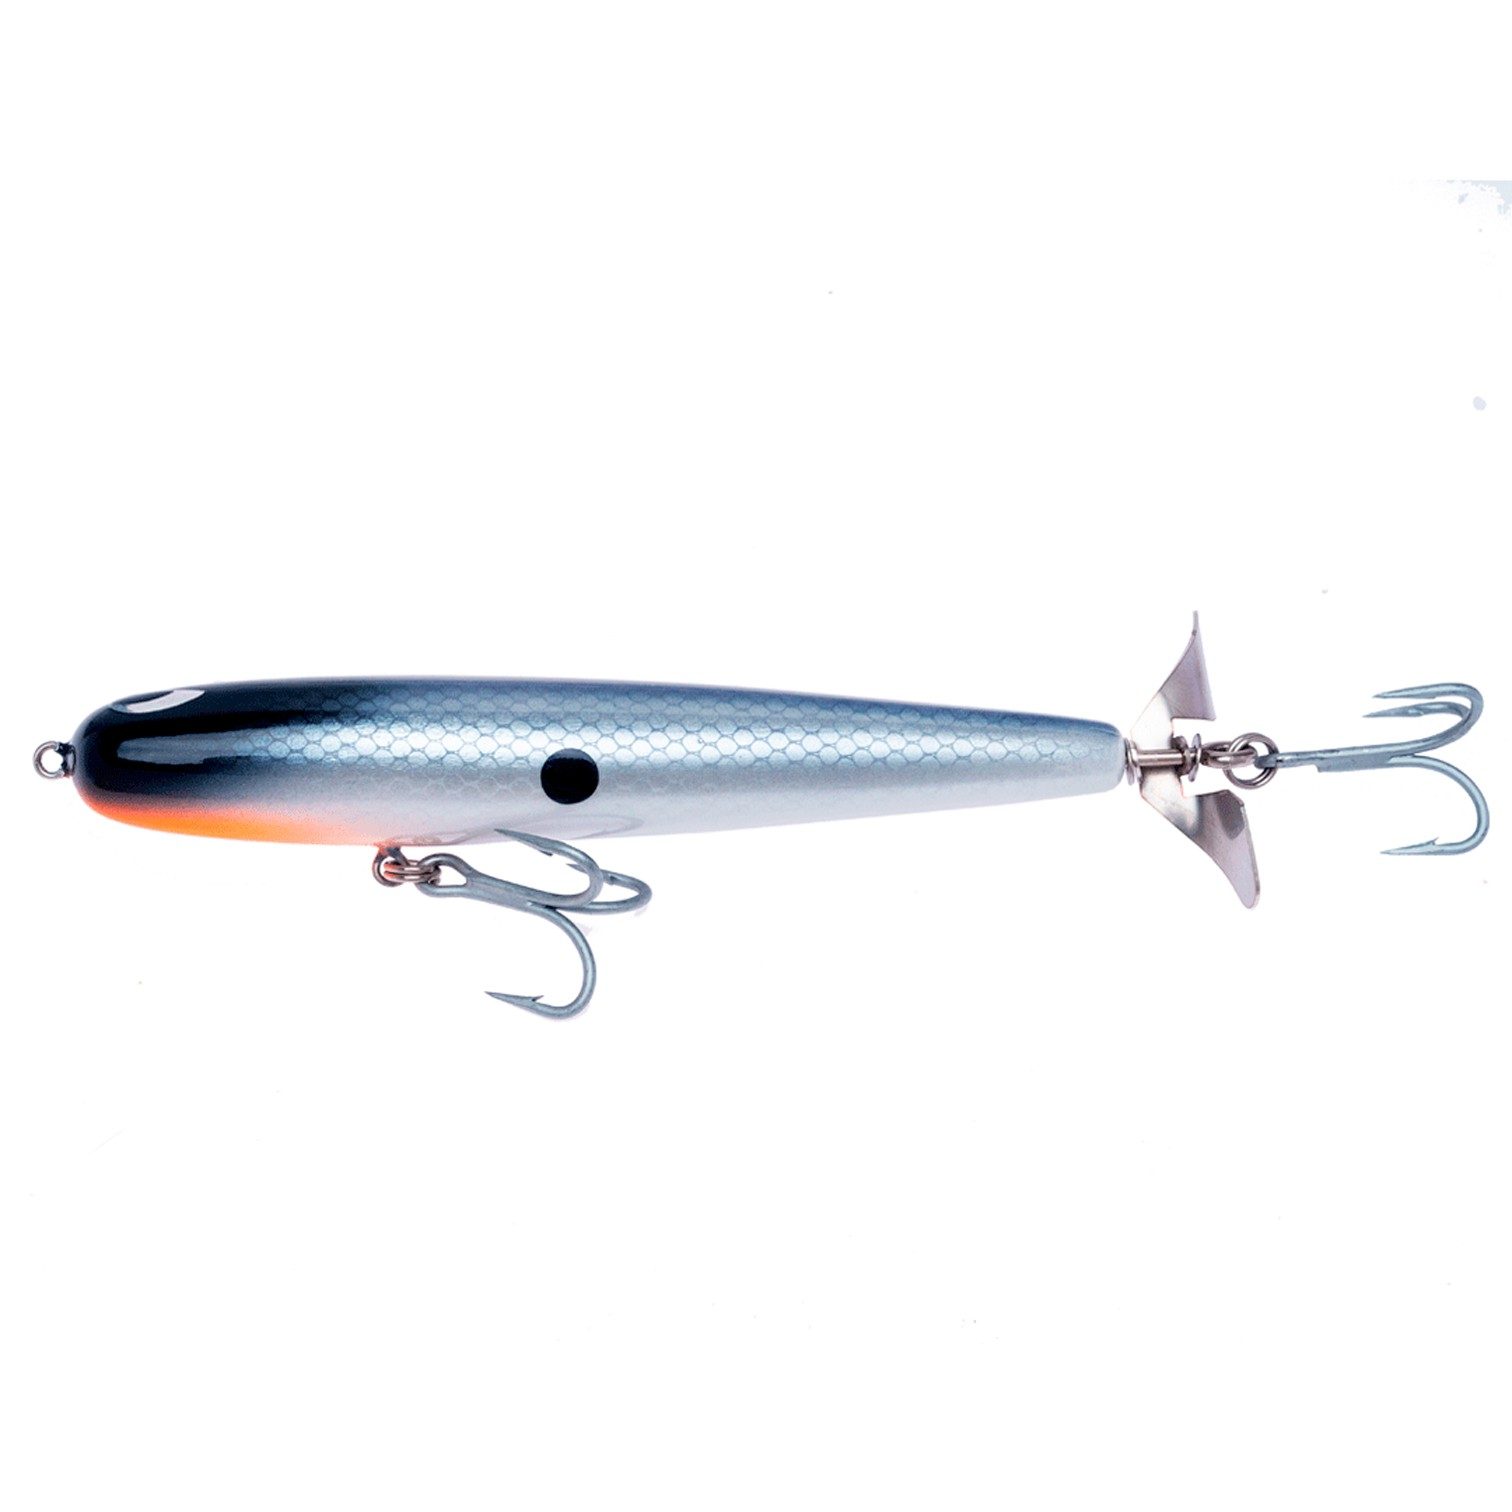 Isca Artificial OCL M-Prop Slim Hélice Floating by Maicon Bianci 14cm 33,5g